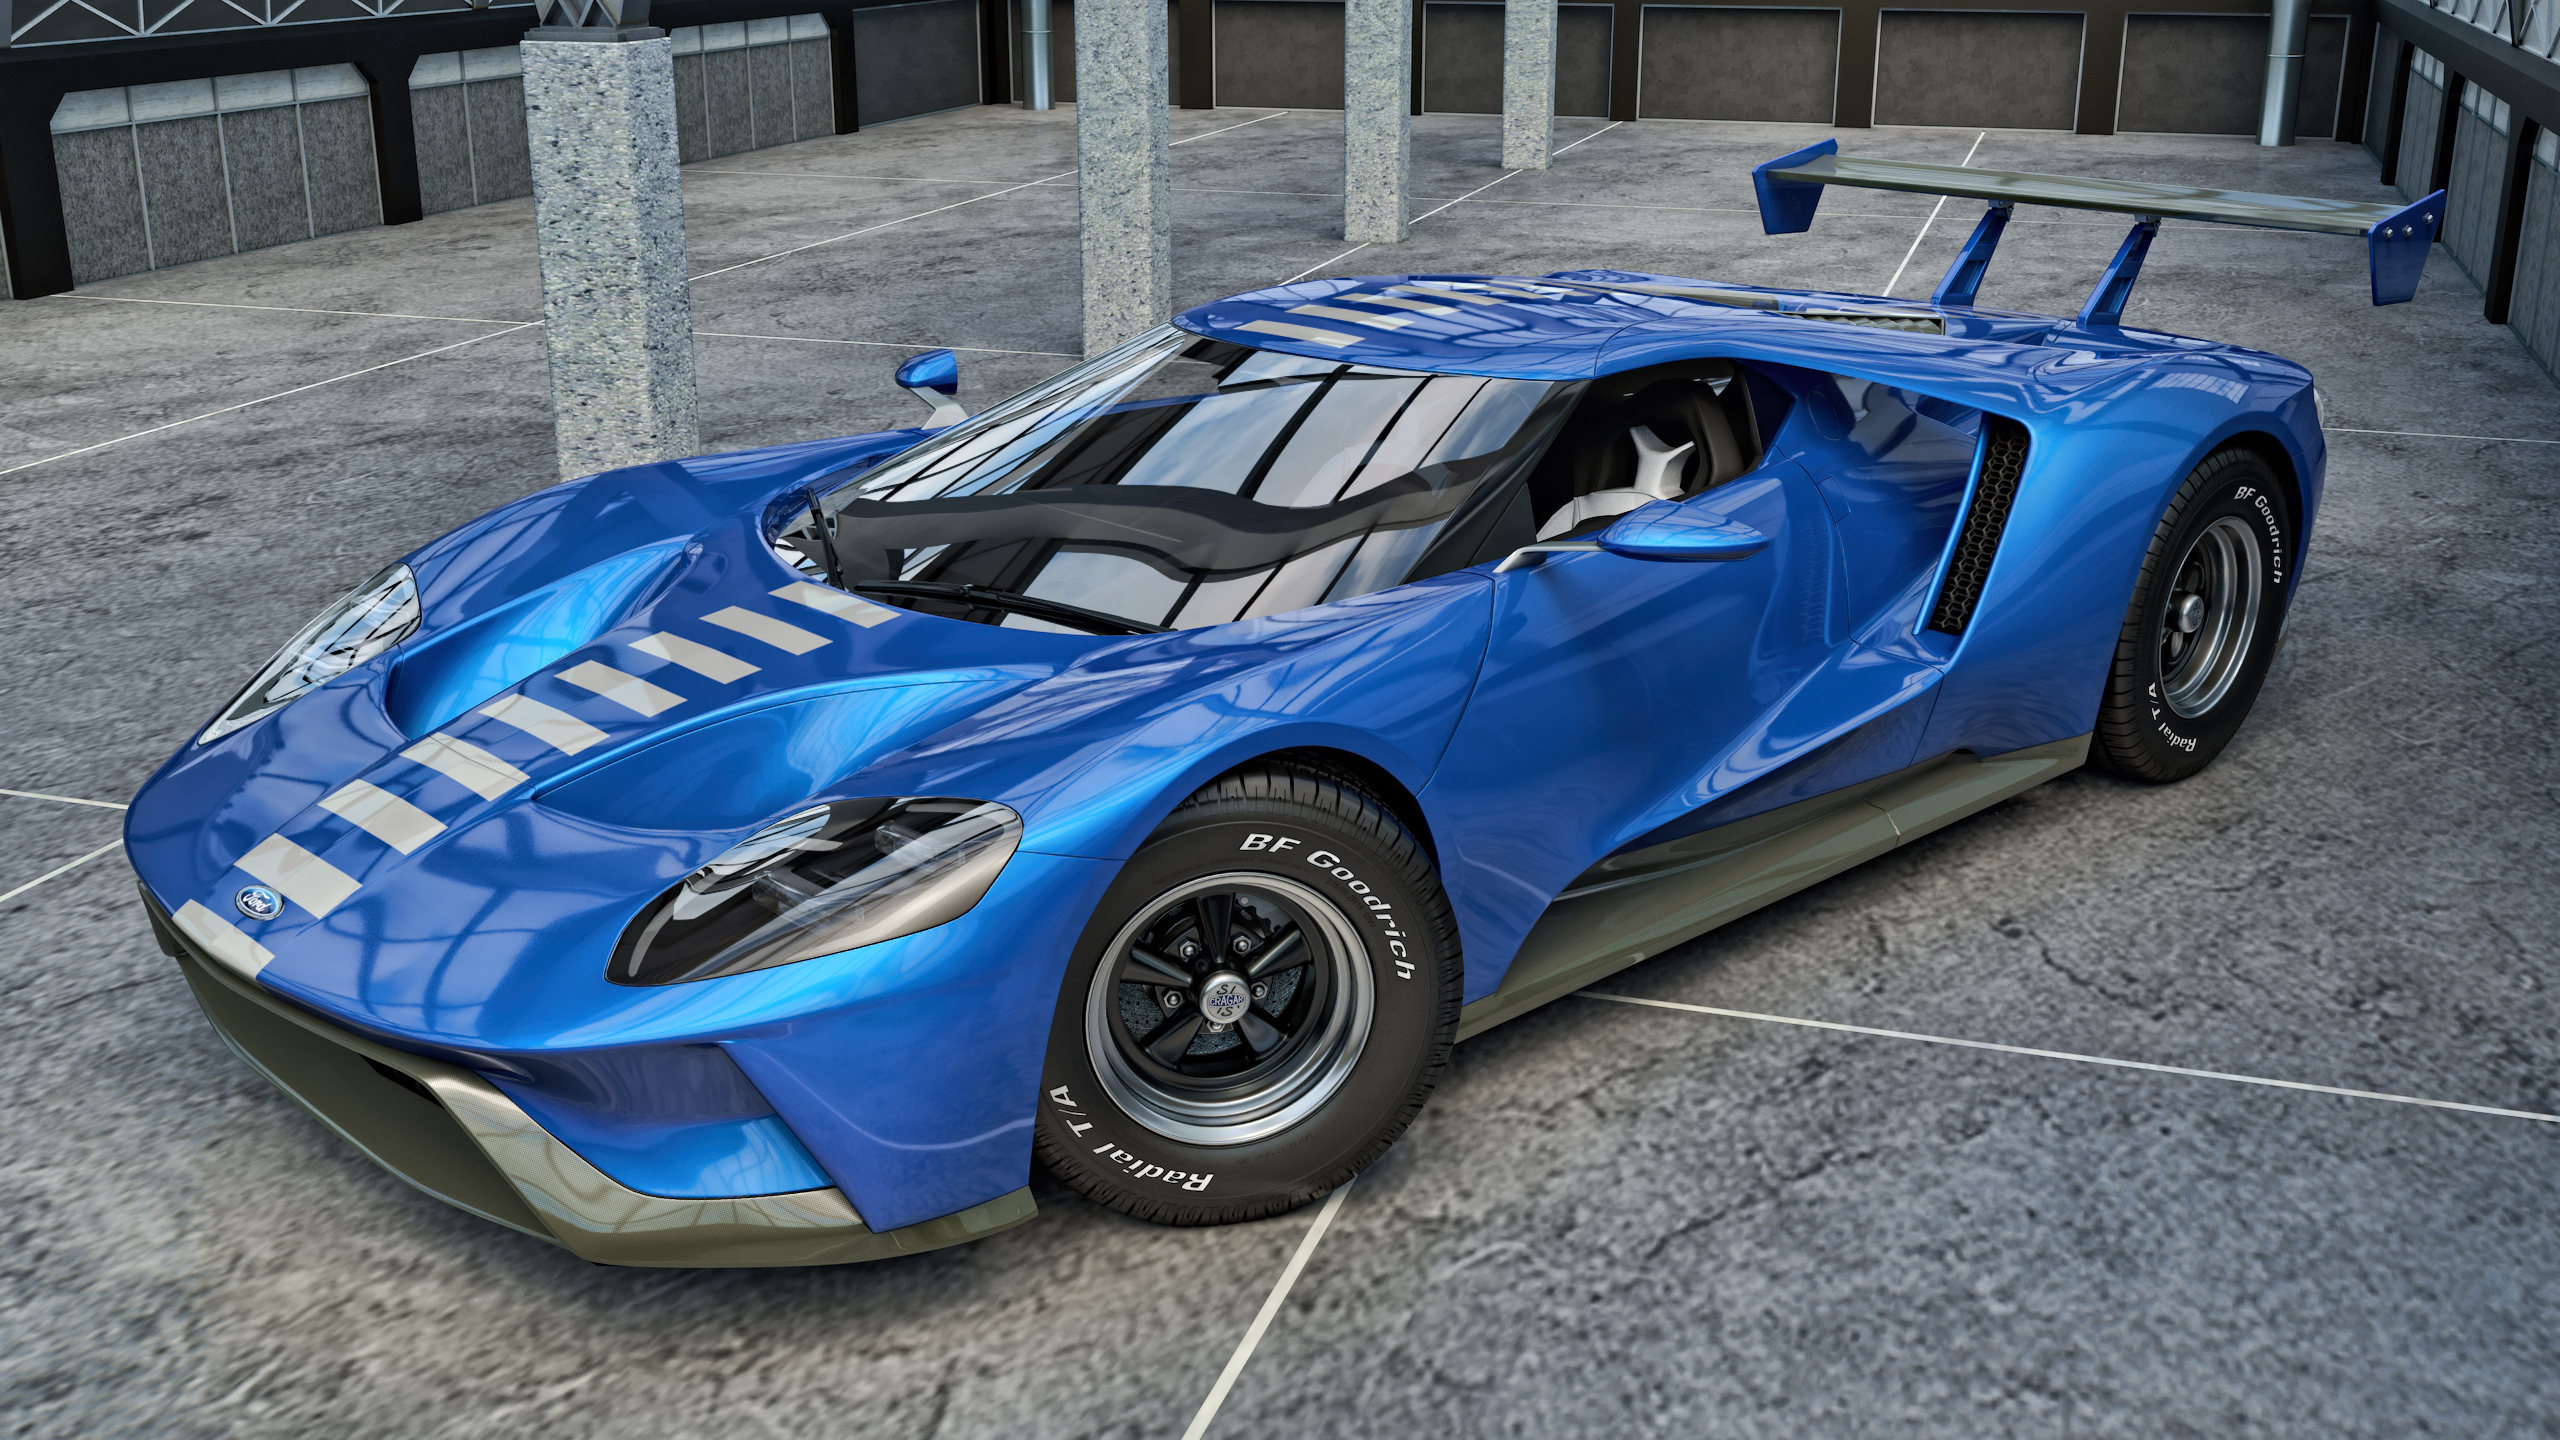 Ford Gt By Samcurry  Ford Gt By Samcurry